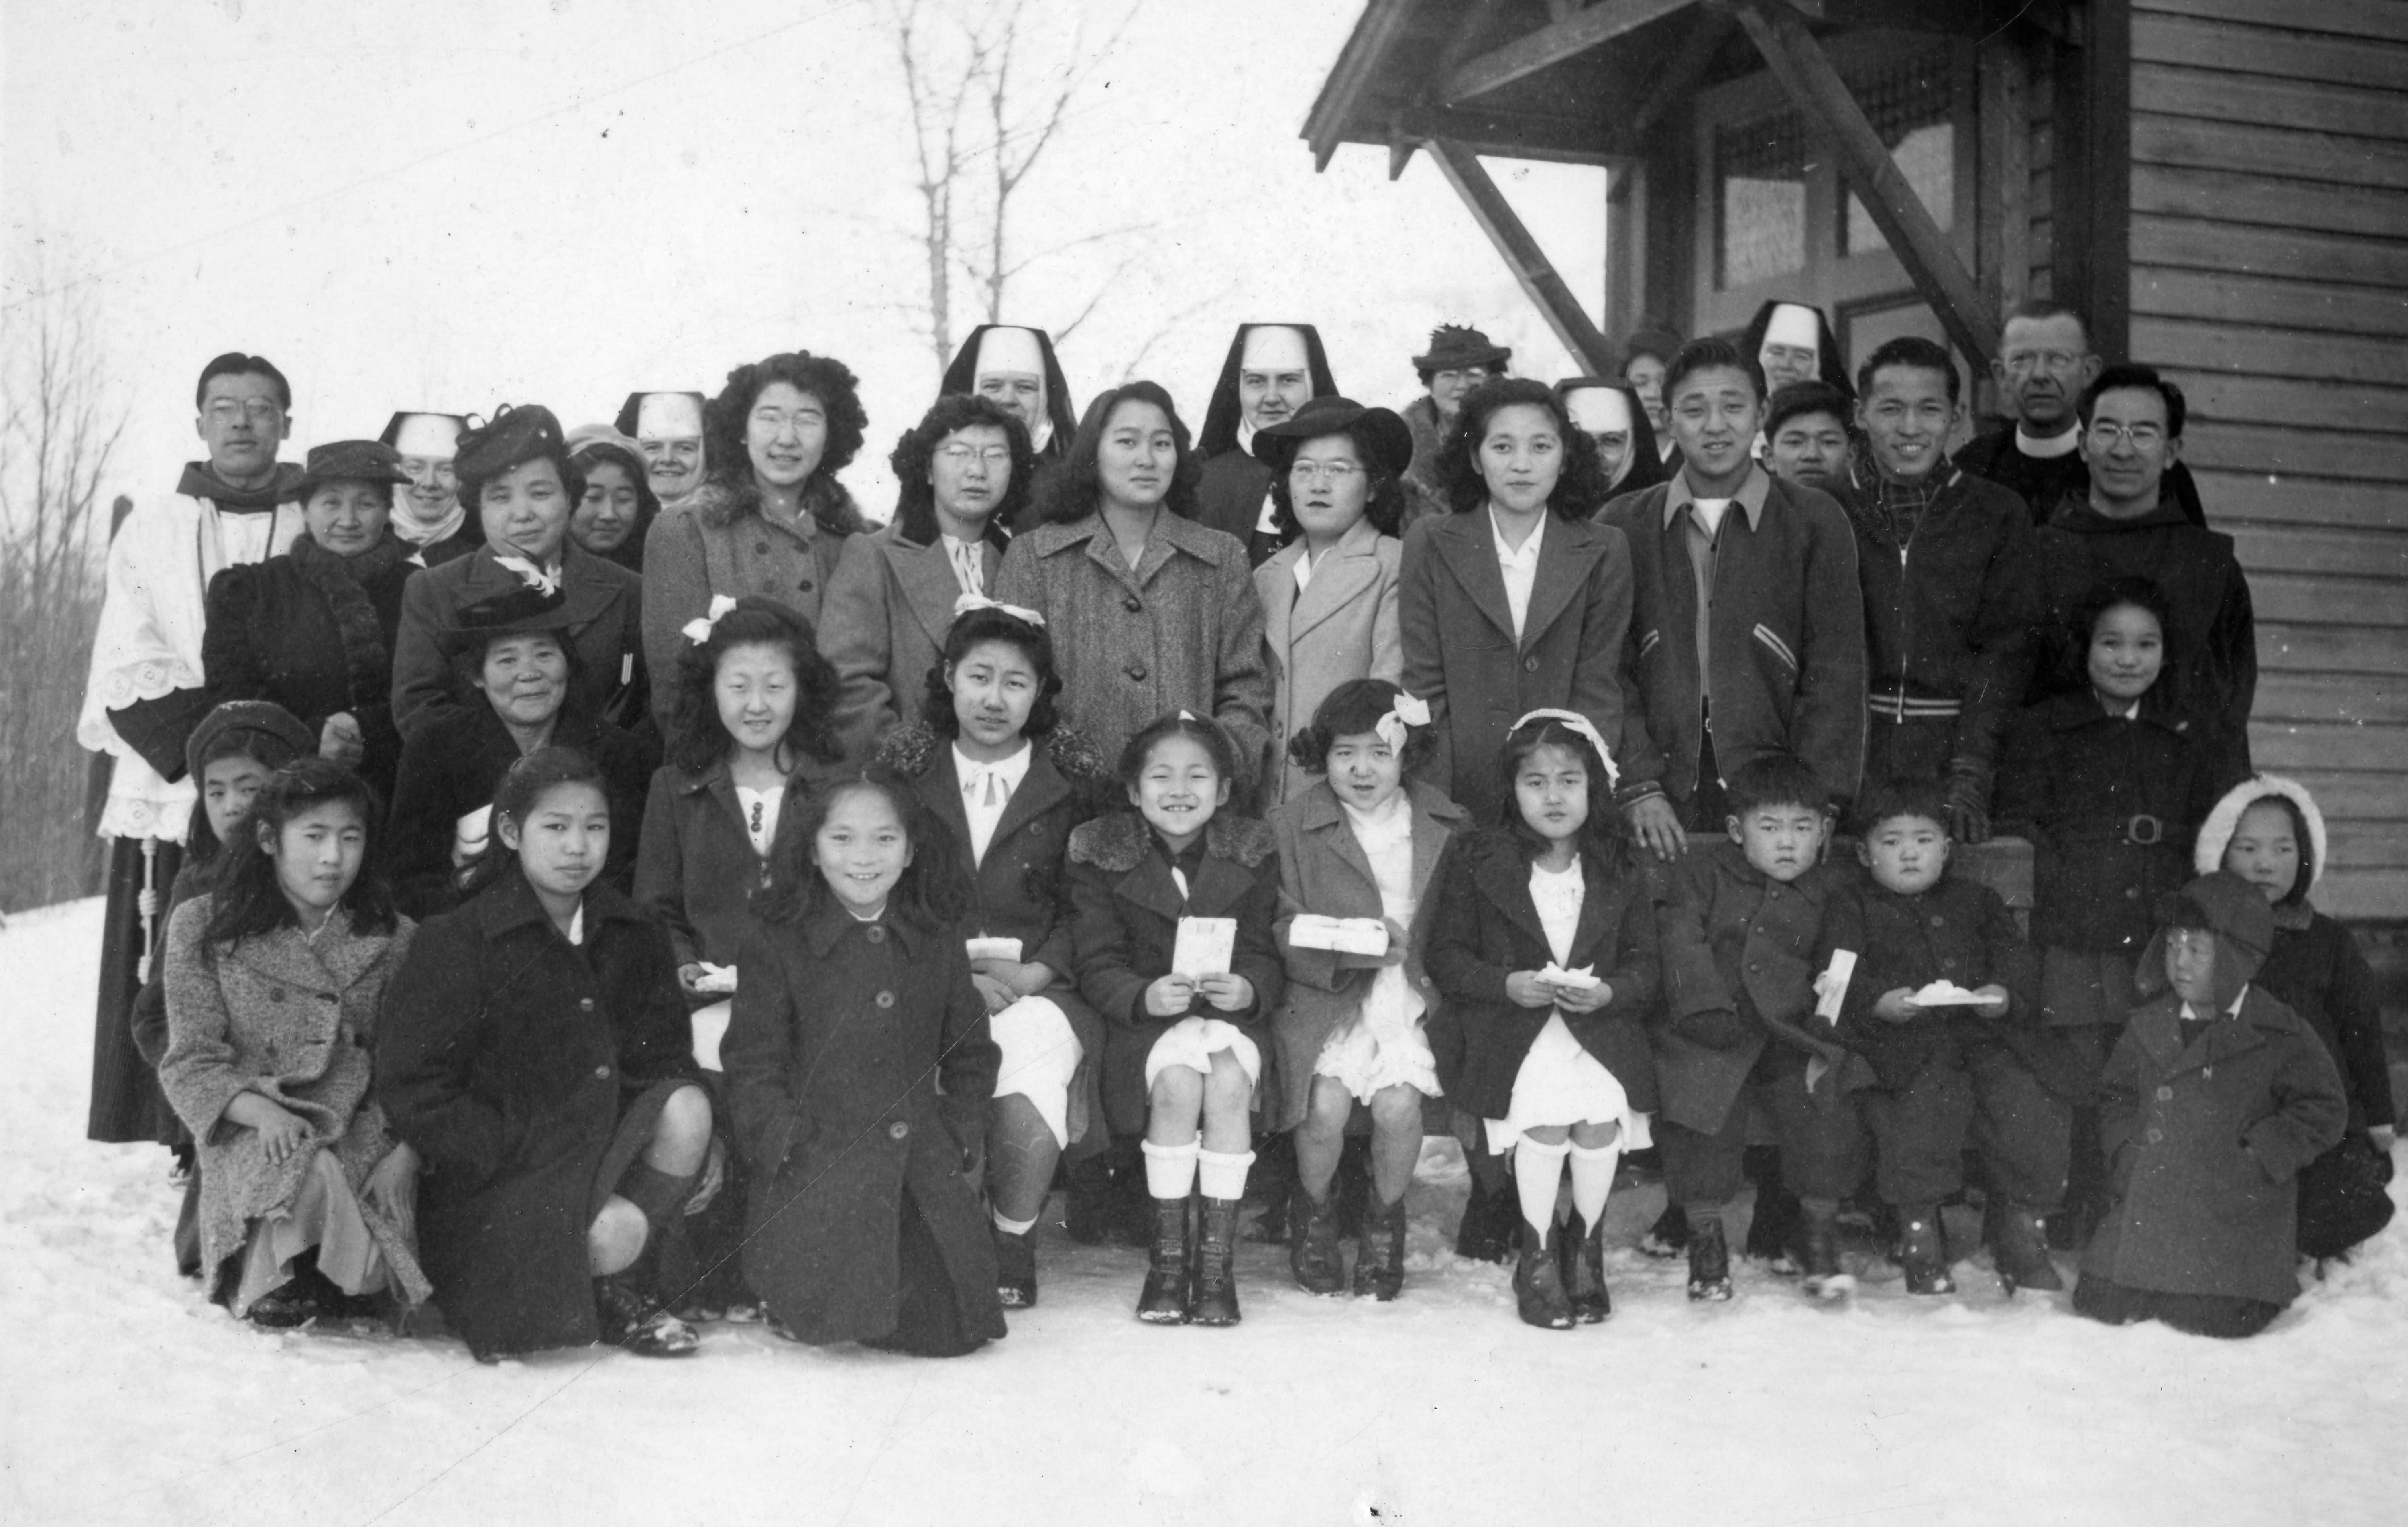 This 1946 photo depicts Japanese children, youths, women and men posing on snow for a photo with Sisters and Priests in Greenwood.